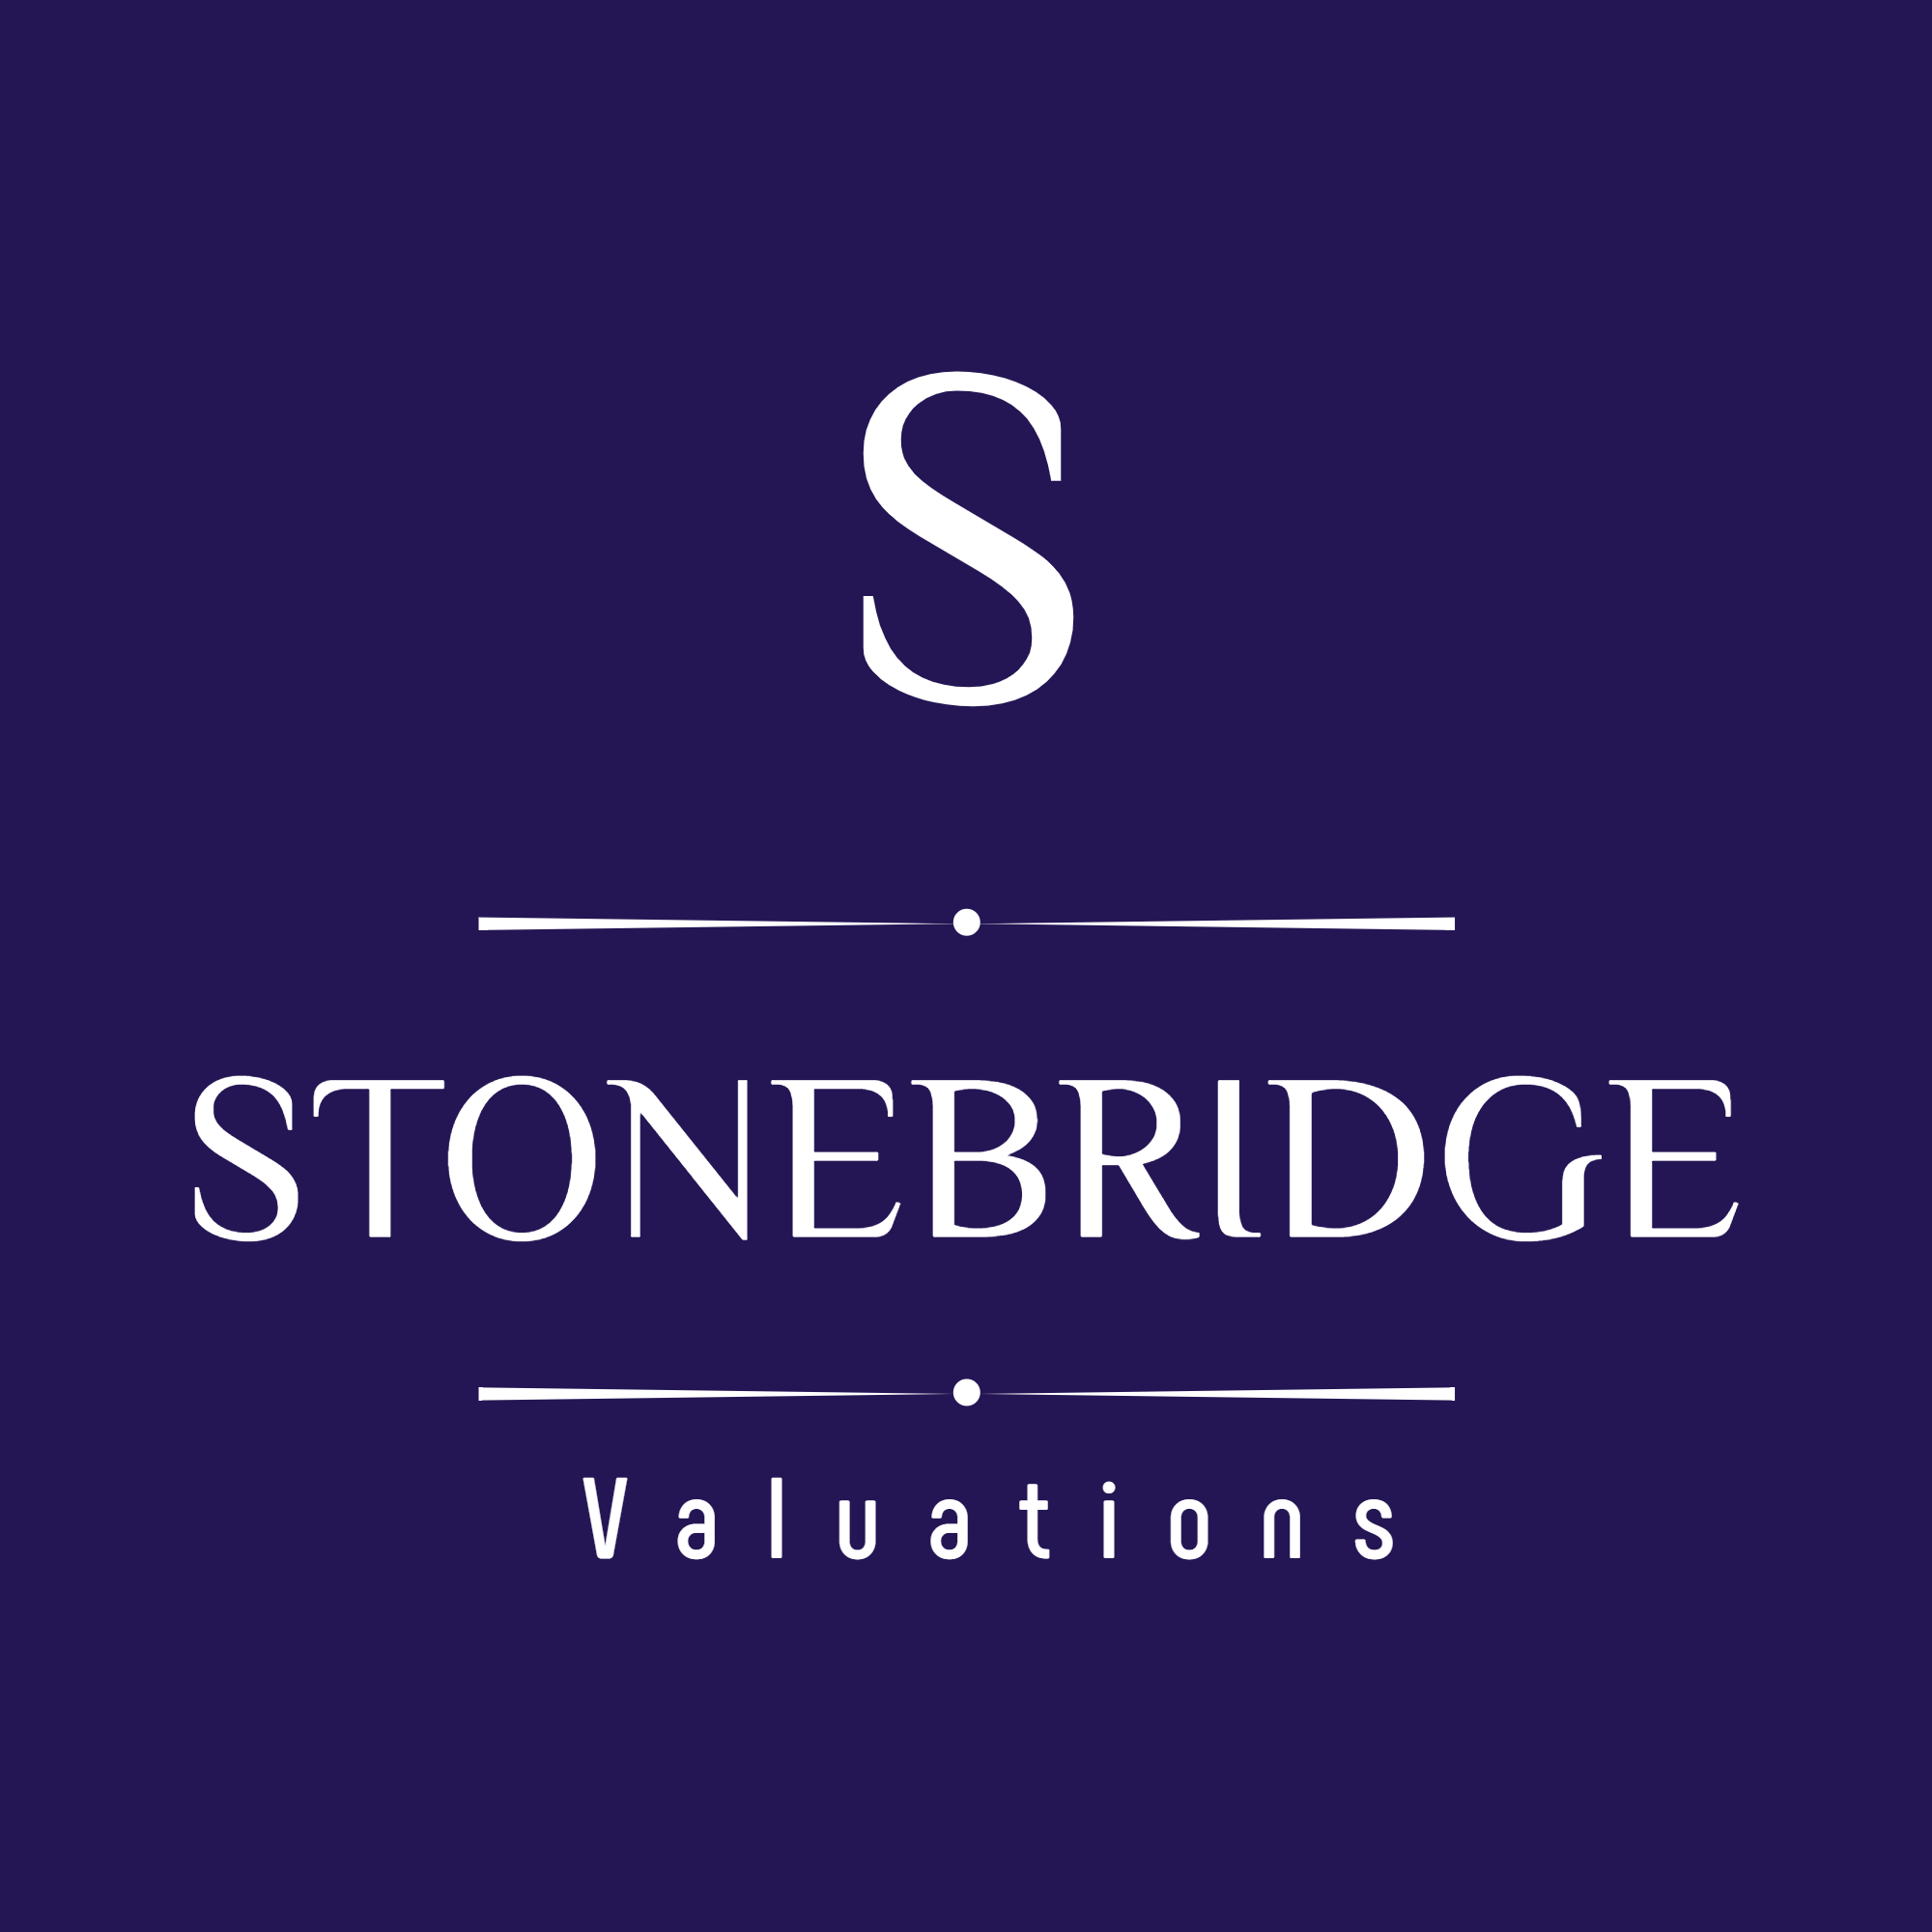 Stonebridge - USA valuation services